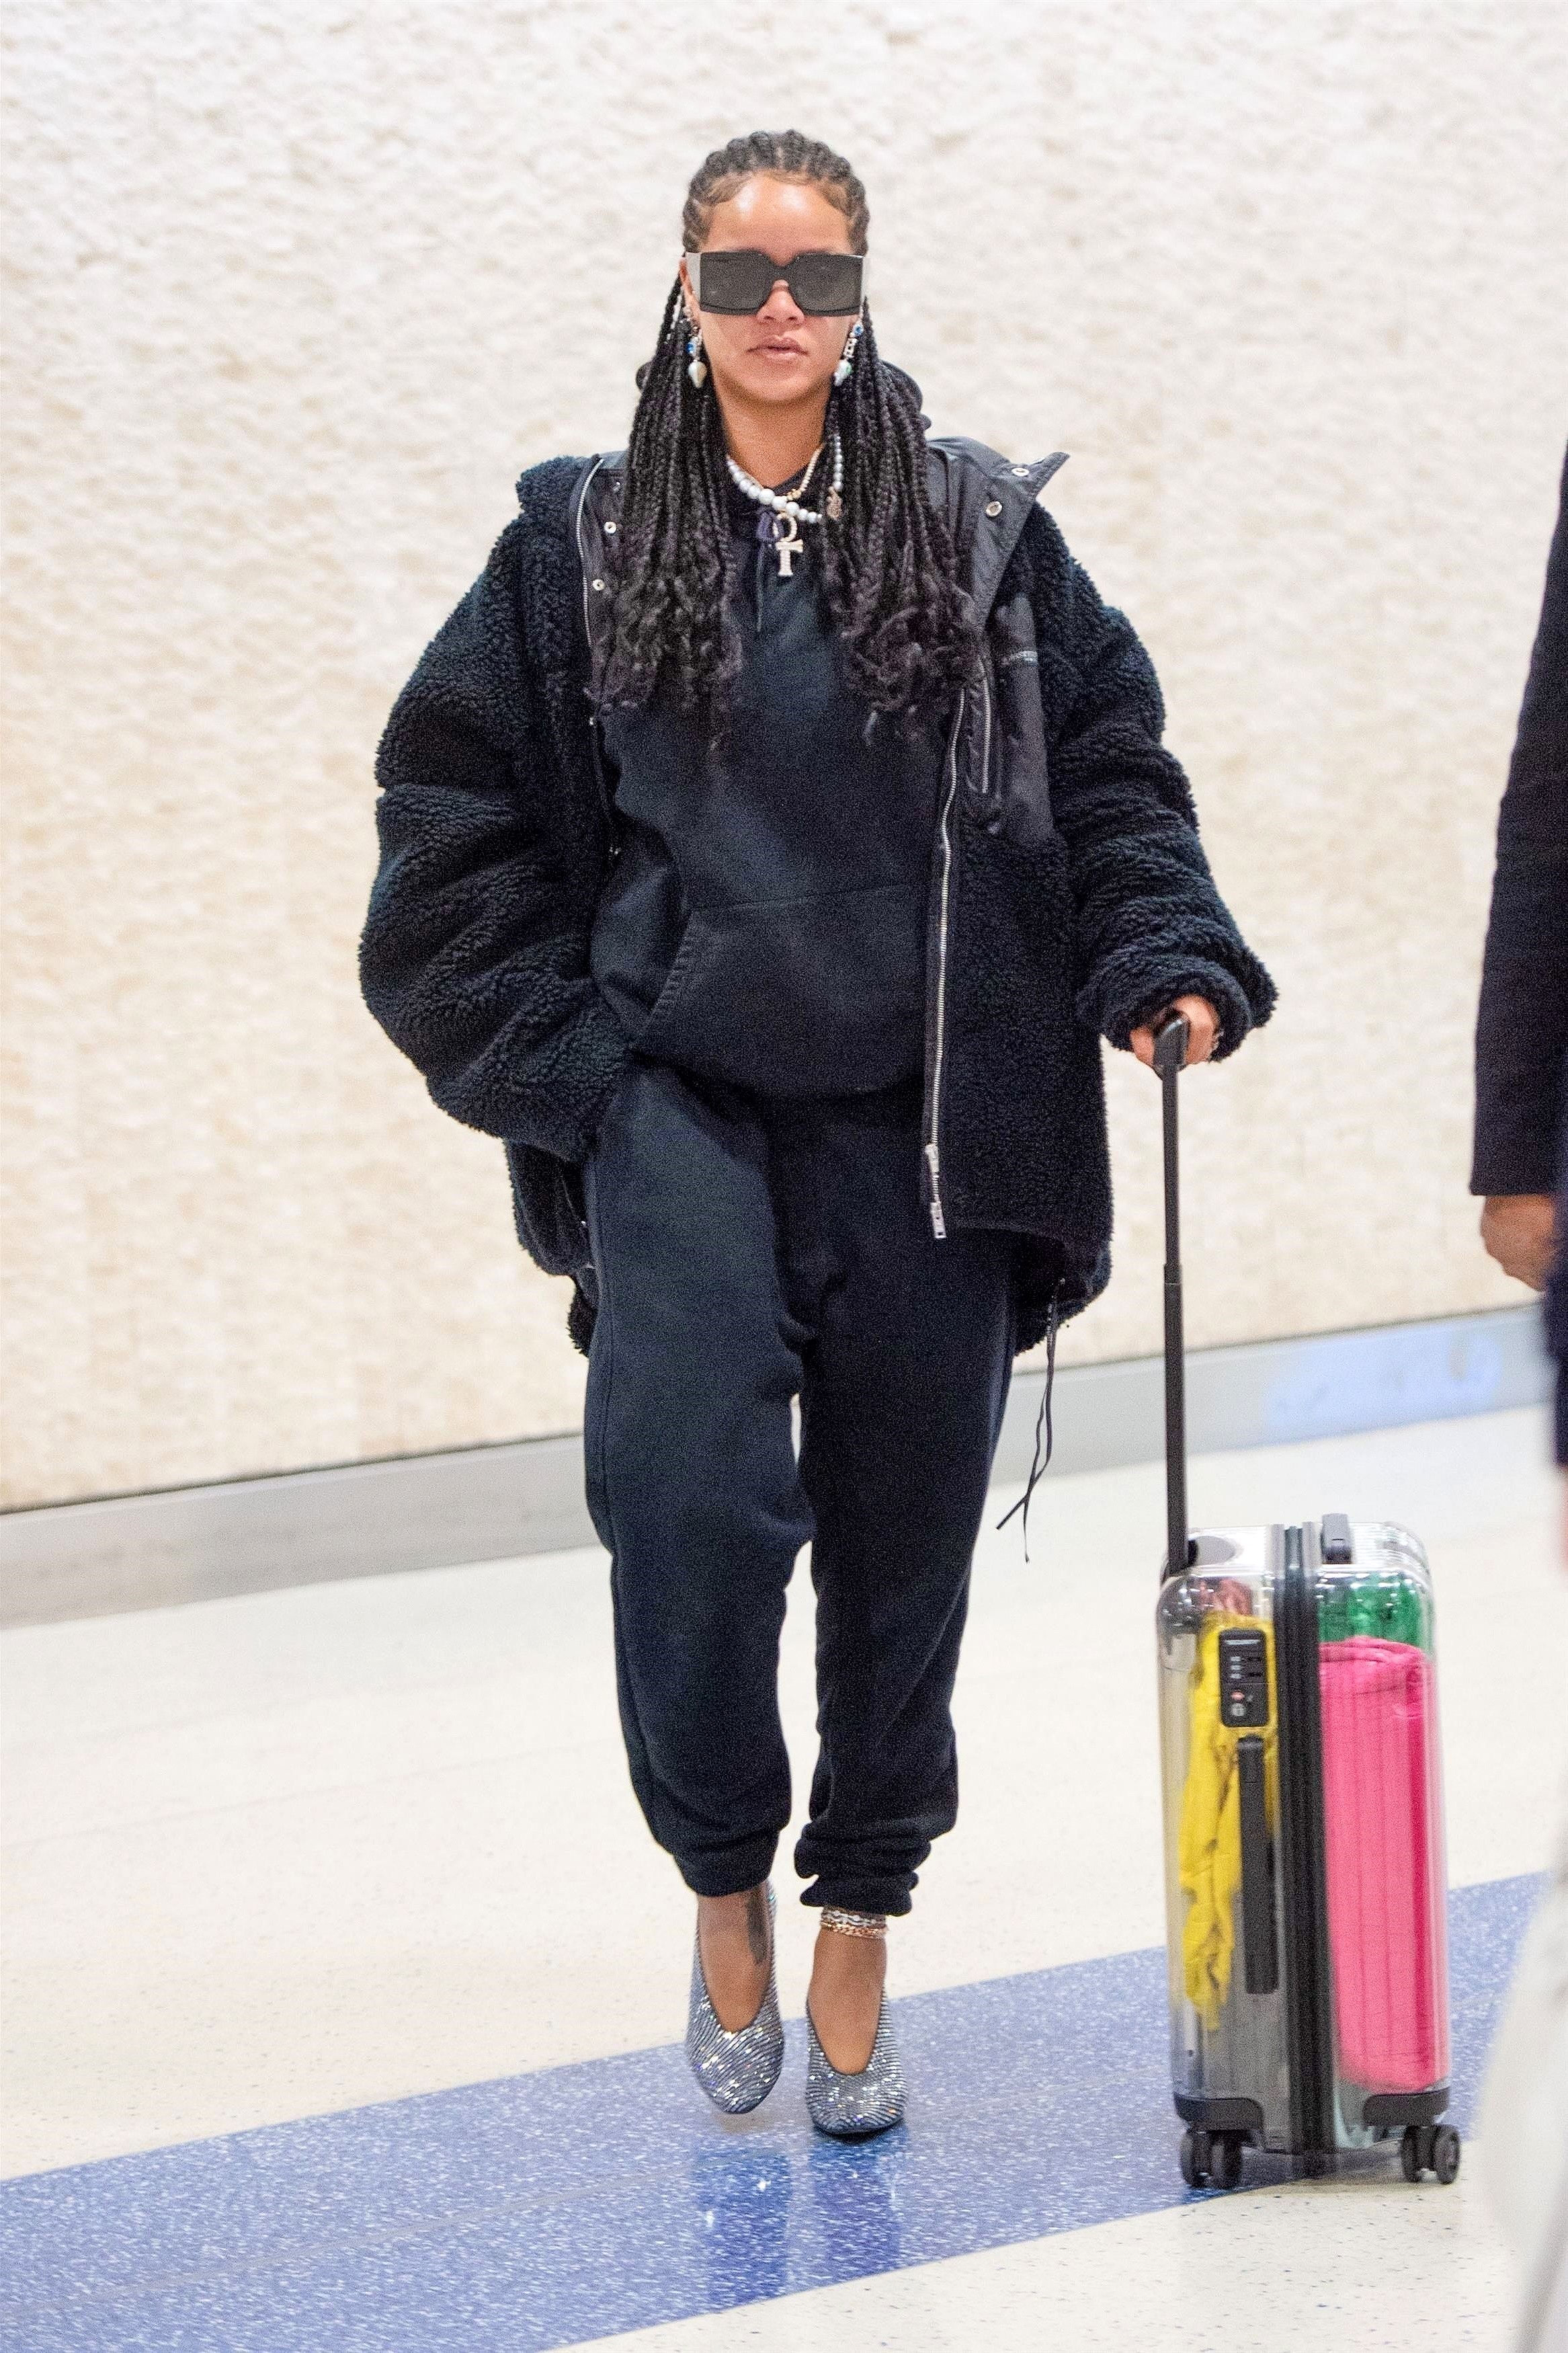 Rihanna Wears Glittery Heels With a Sweatsuit at the Airport